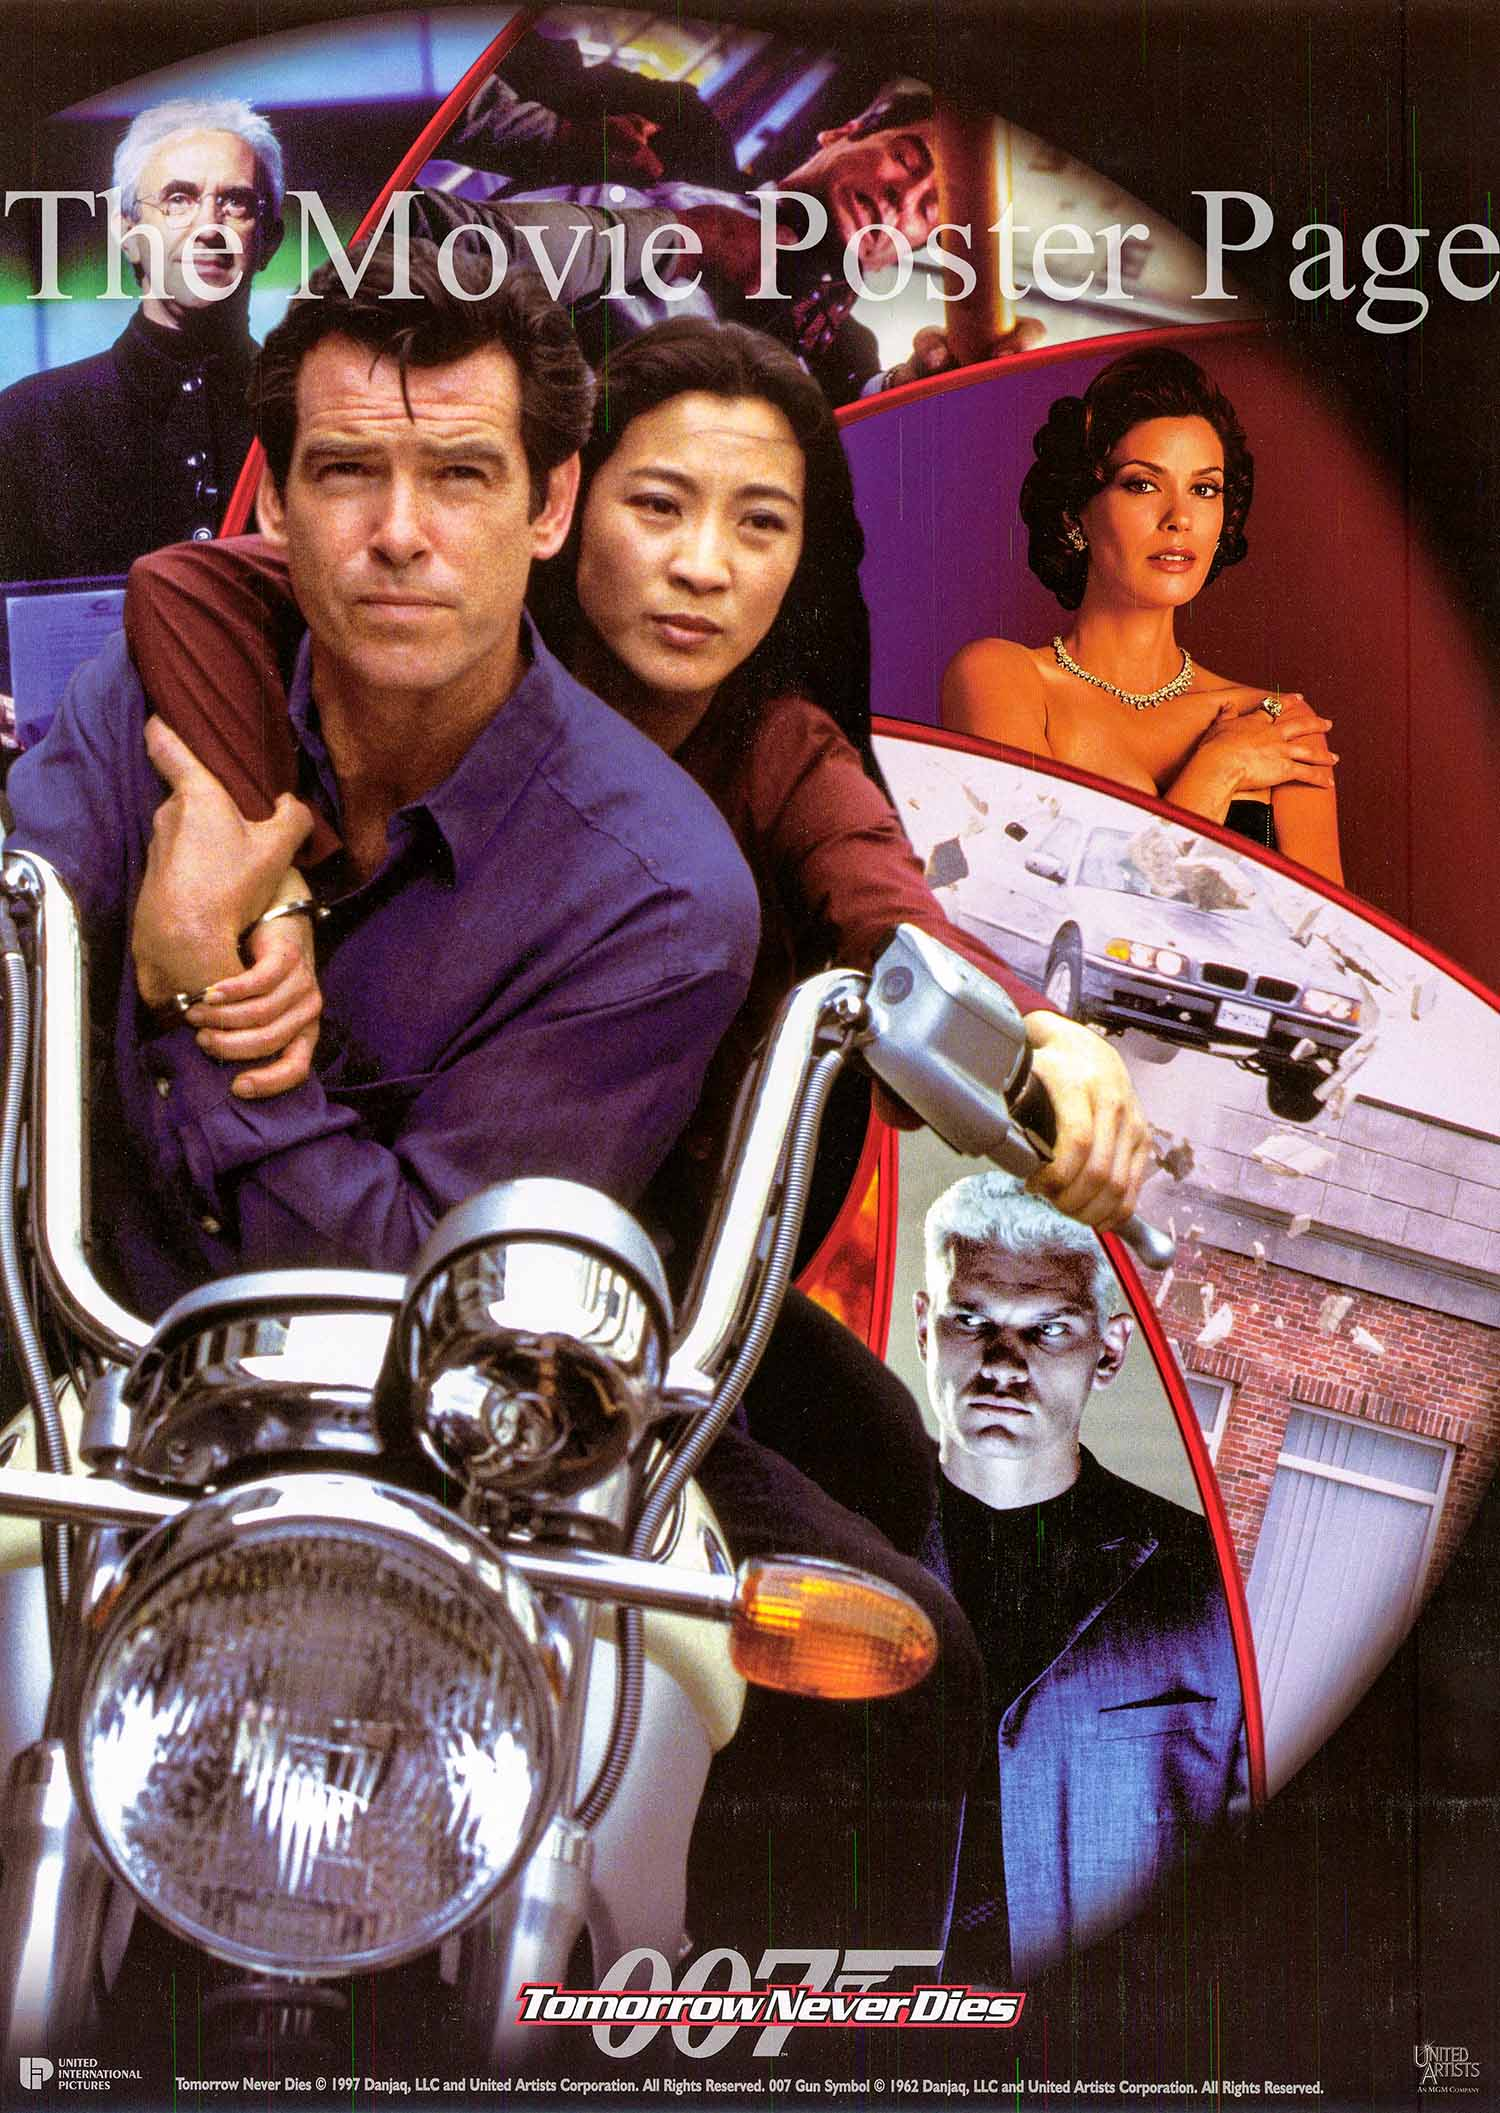 Pictured is a UK mini promotional poster for the 1997 Roger Spotiswoode film Tomorrow Never Dies starring Pierce Brosnan as James Bond.